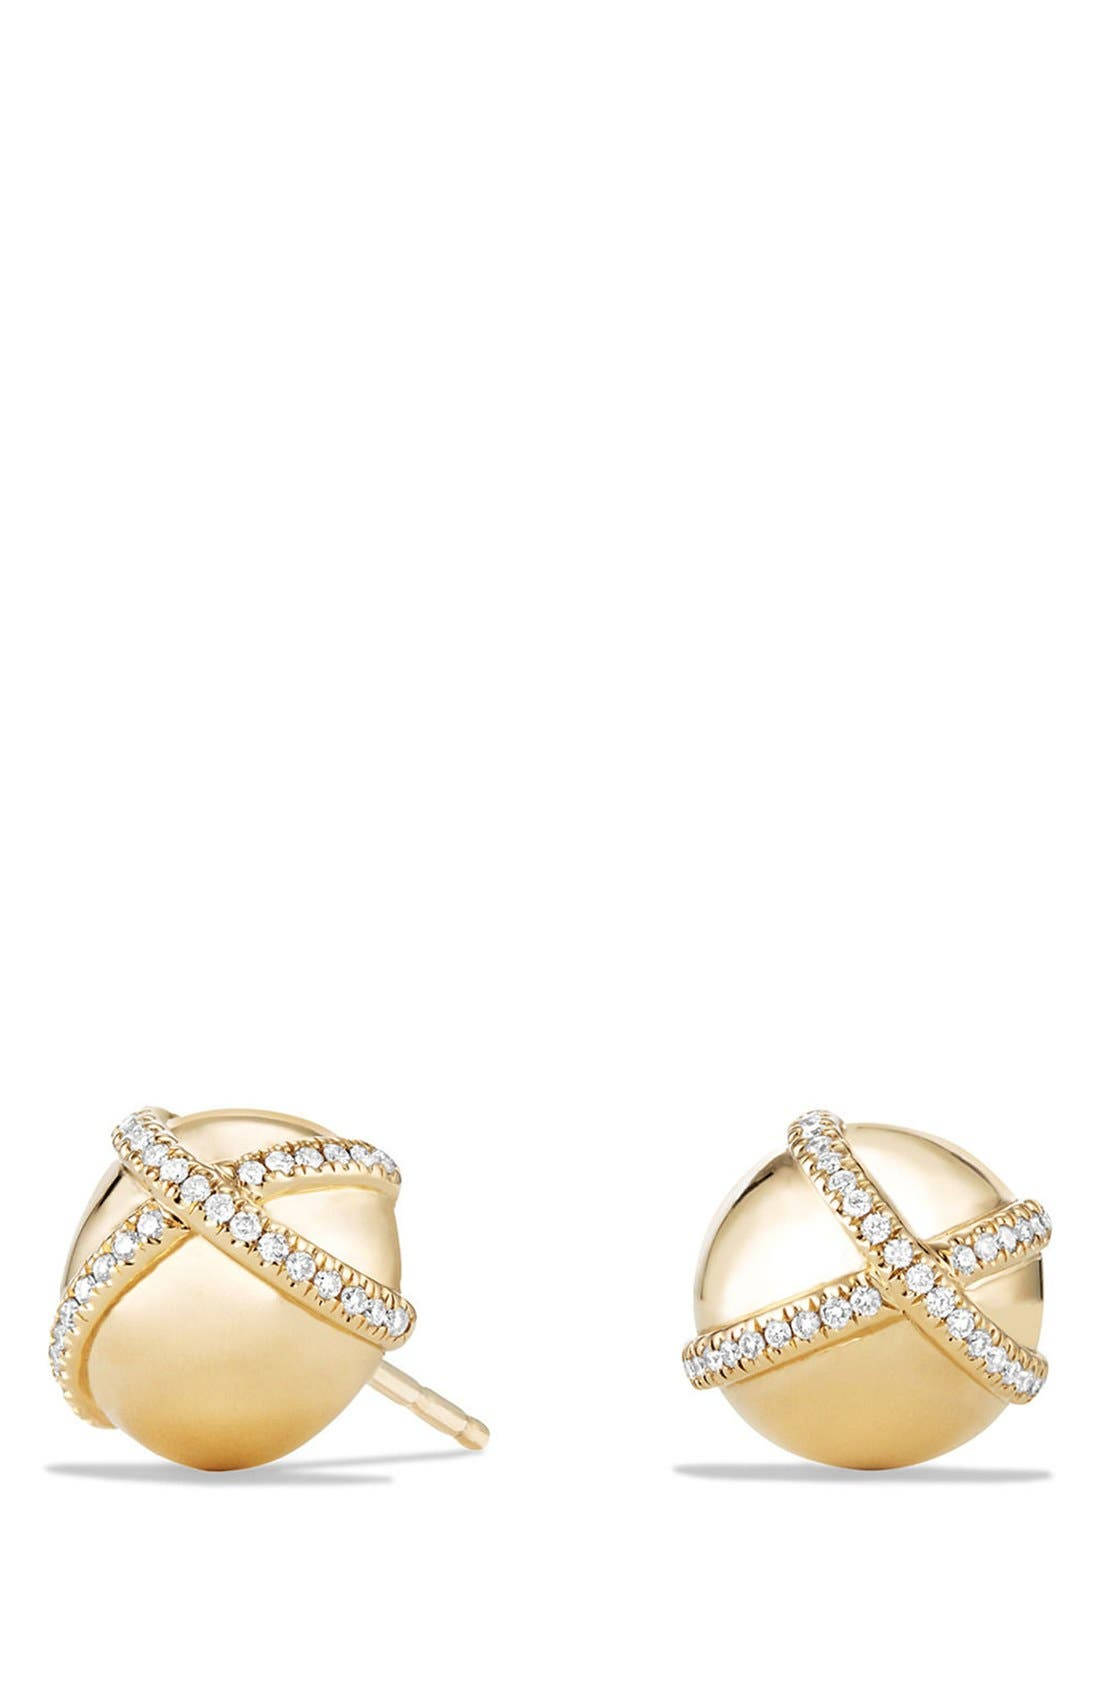 David Yurman 'Solari' Wrap Stud Earrings with Pavé Diamonds in 18K Gold